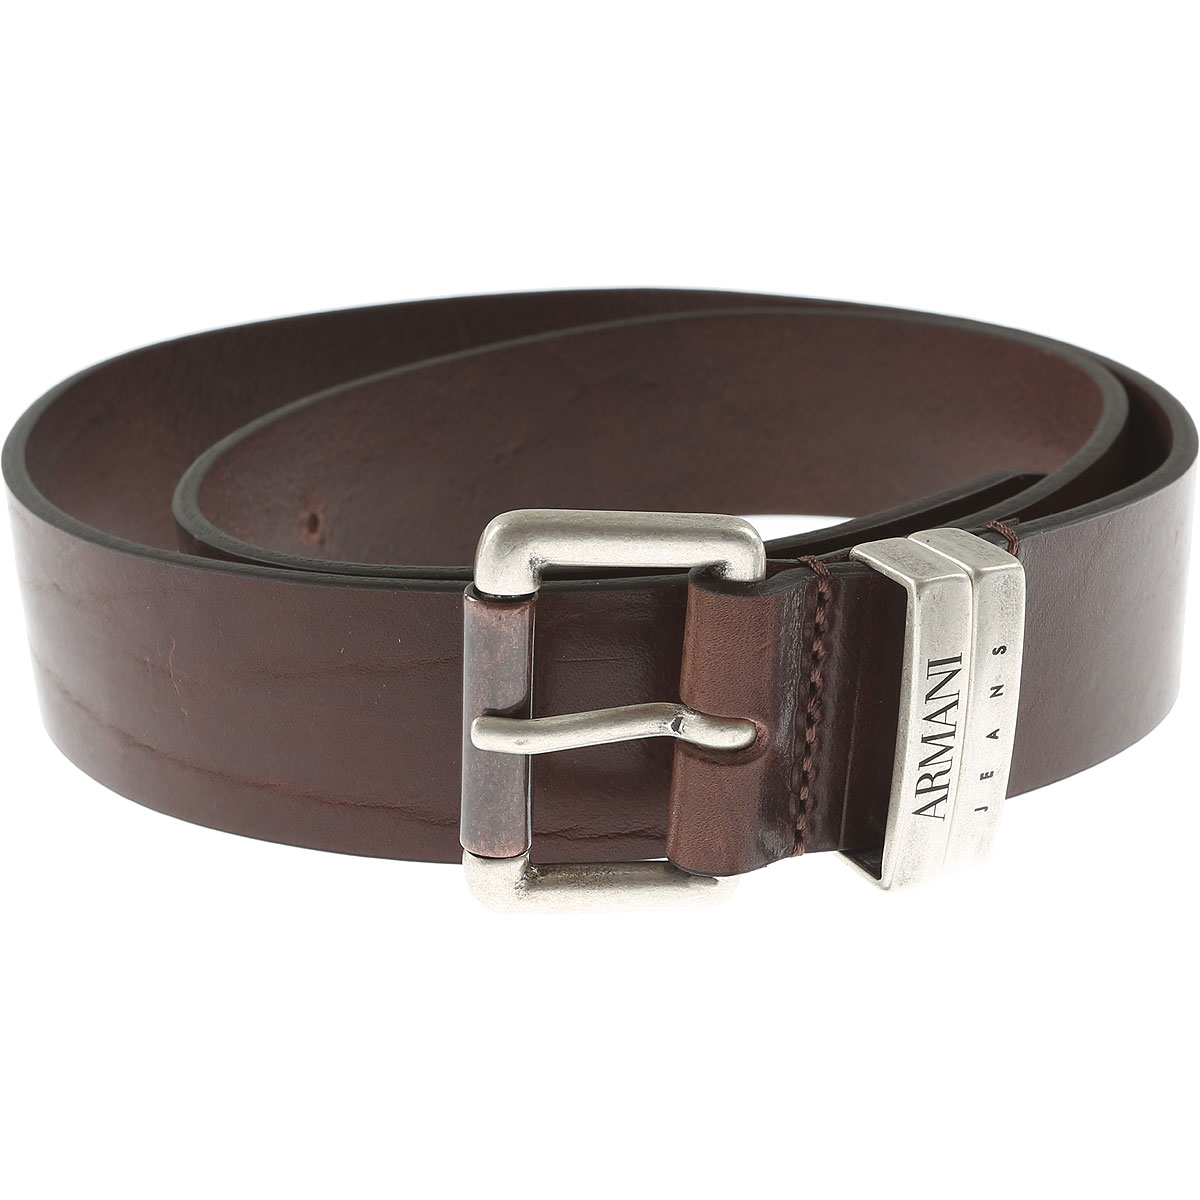 Armani Jeans Mens Belts On Sale, Dark Brown, Leather, 2017, III (85-100 cm  34-40 inches) IV (90-105 cm  36-42 inches)